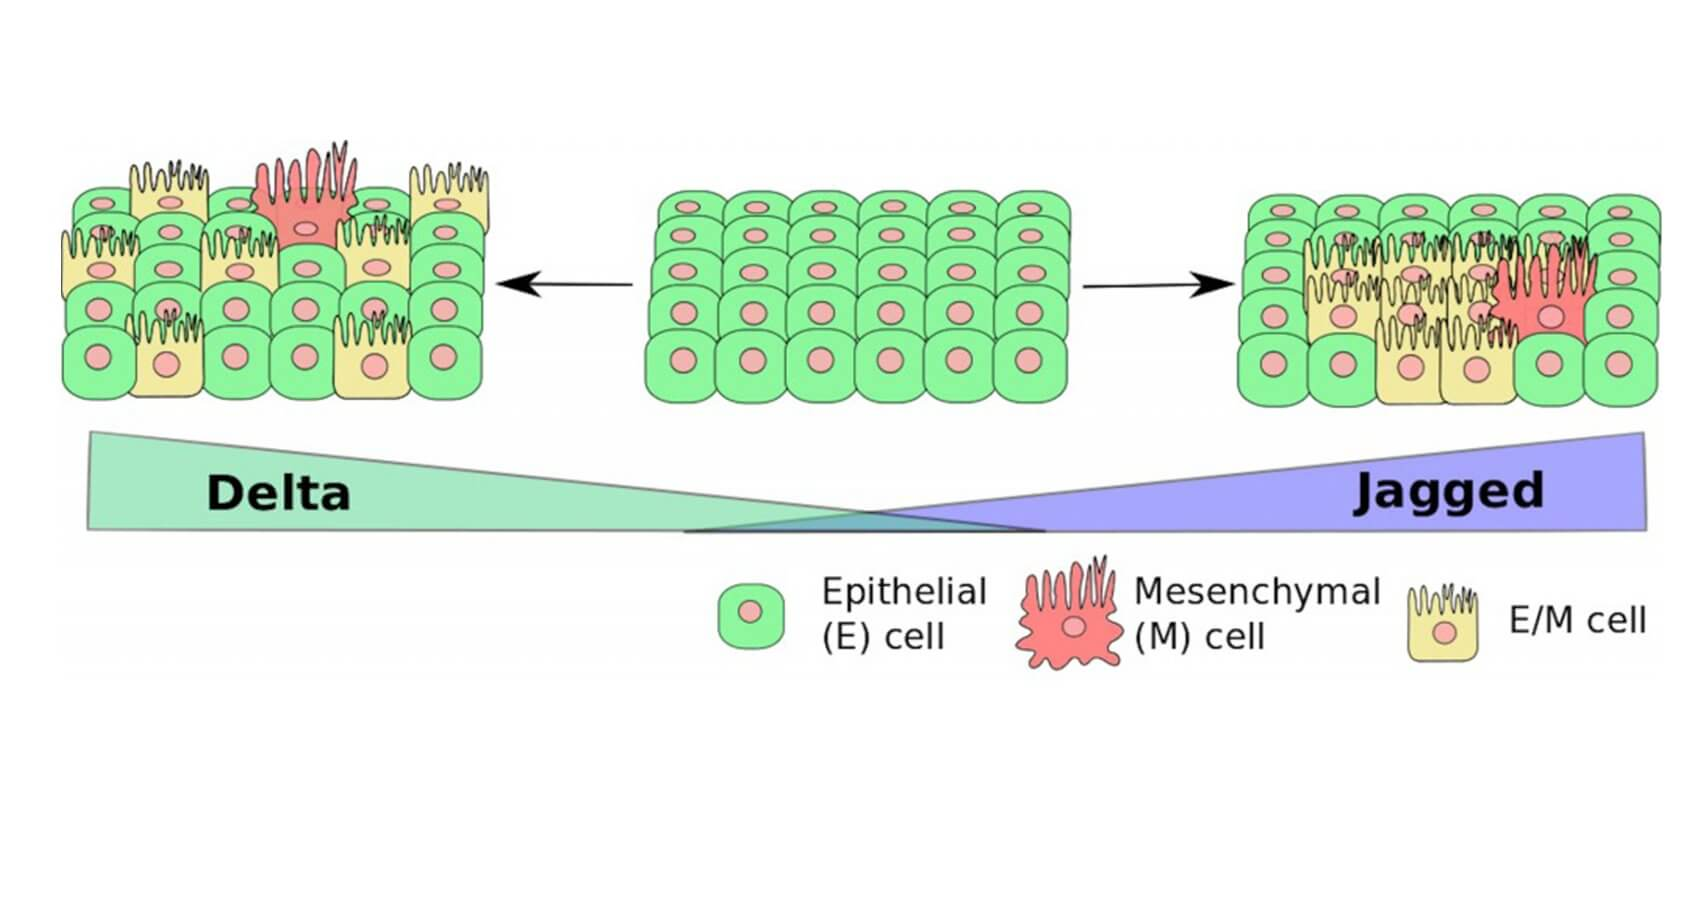 Epithelial cells normally become mesenchymal cells under the influence of a notch-signaling protein called delta, but they can become hybrid epithelial-mesenchymal cells under the influence of jagged proteins when the signaling system is hijacked by cancer, according to Rice University researchers. These hybrid cells can communicate with each other, cluster and metastasize to other parts of the body. Illustration by Marcelo Boareto